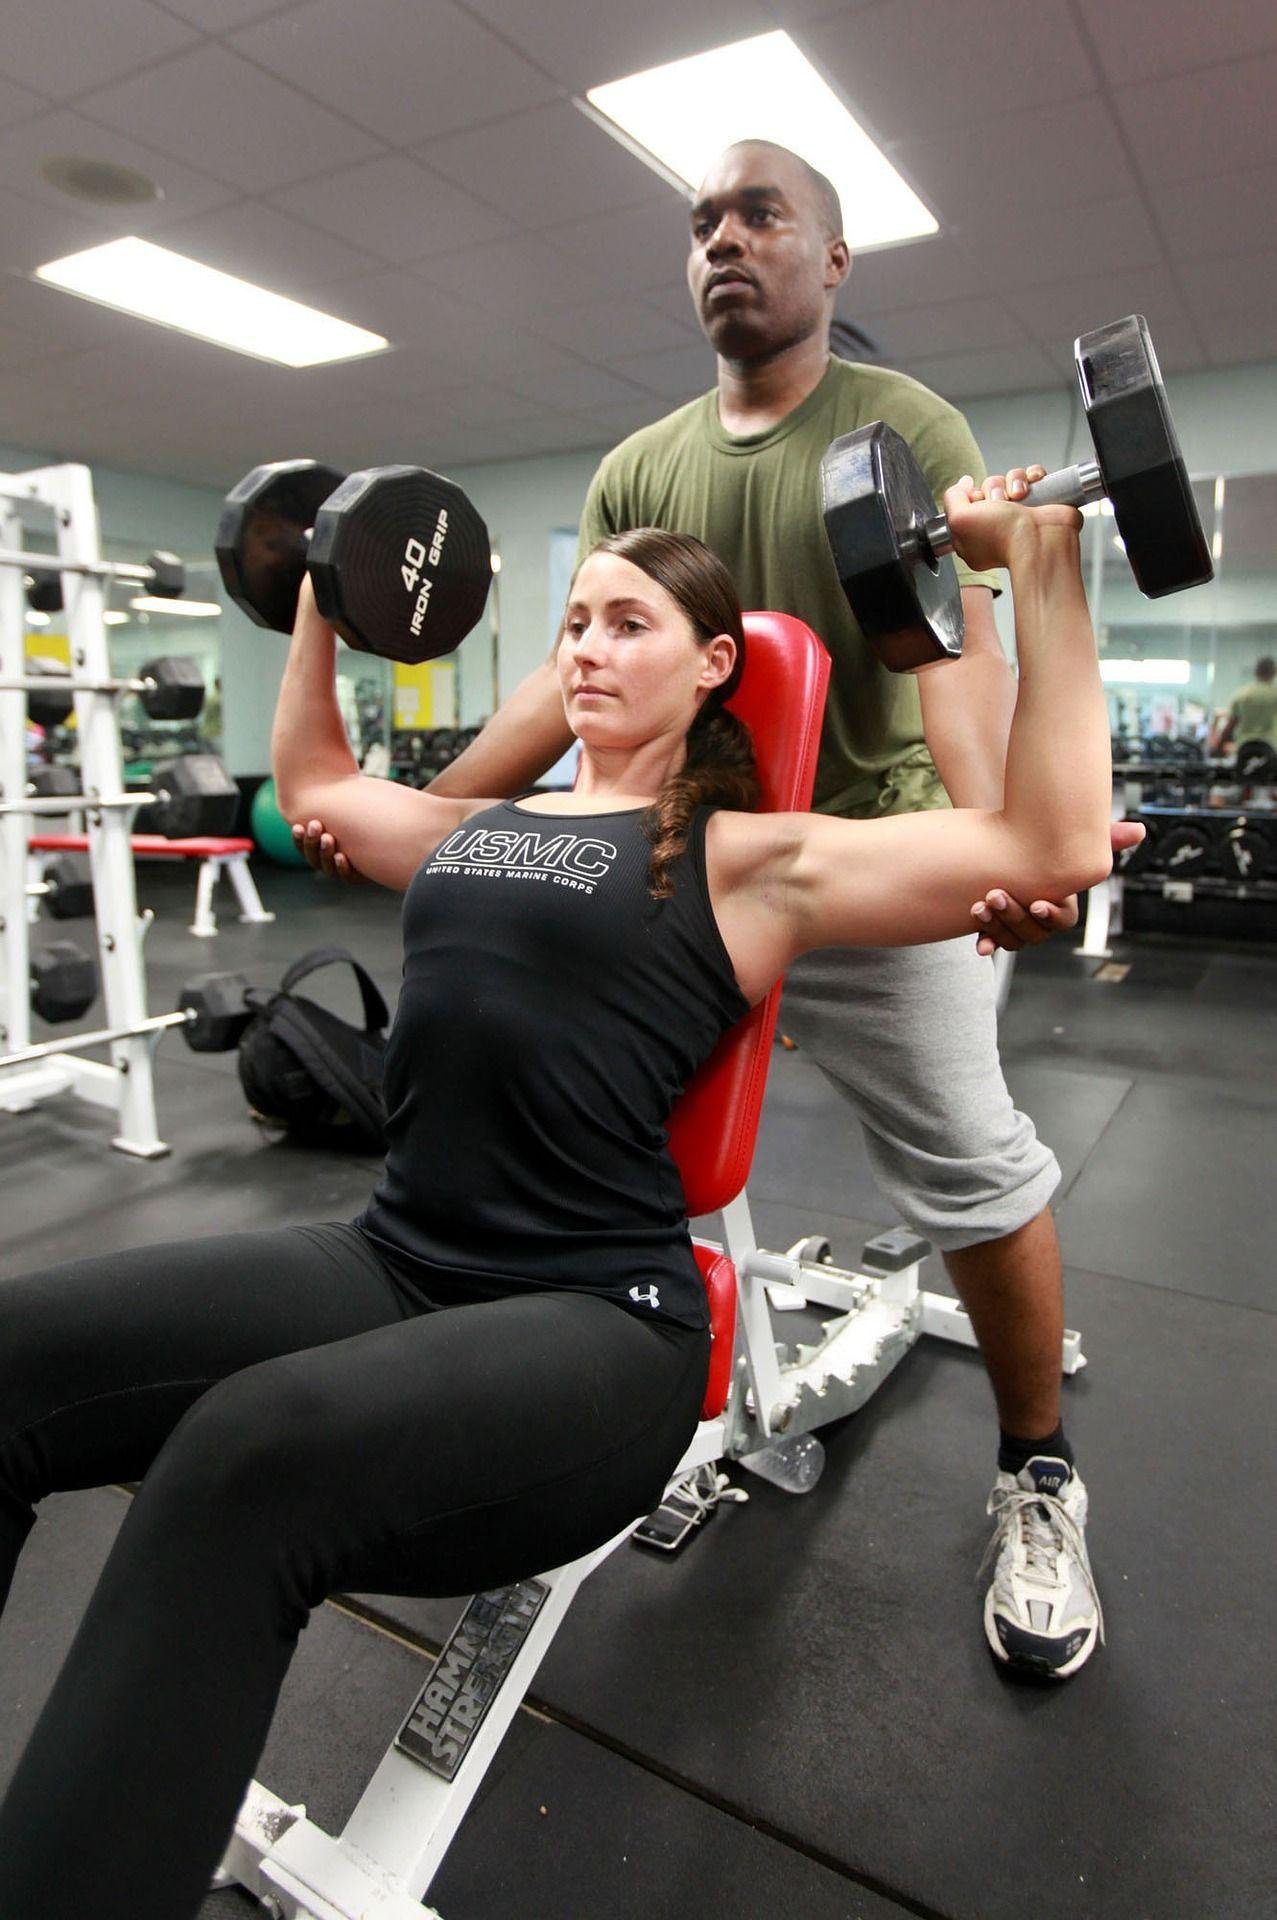 NYC fitness trainer